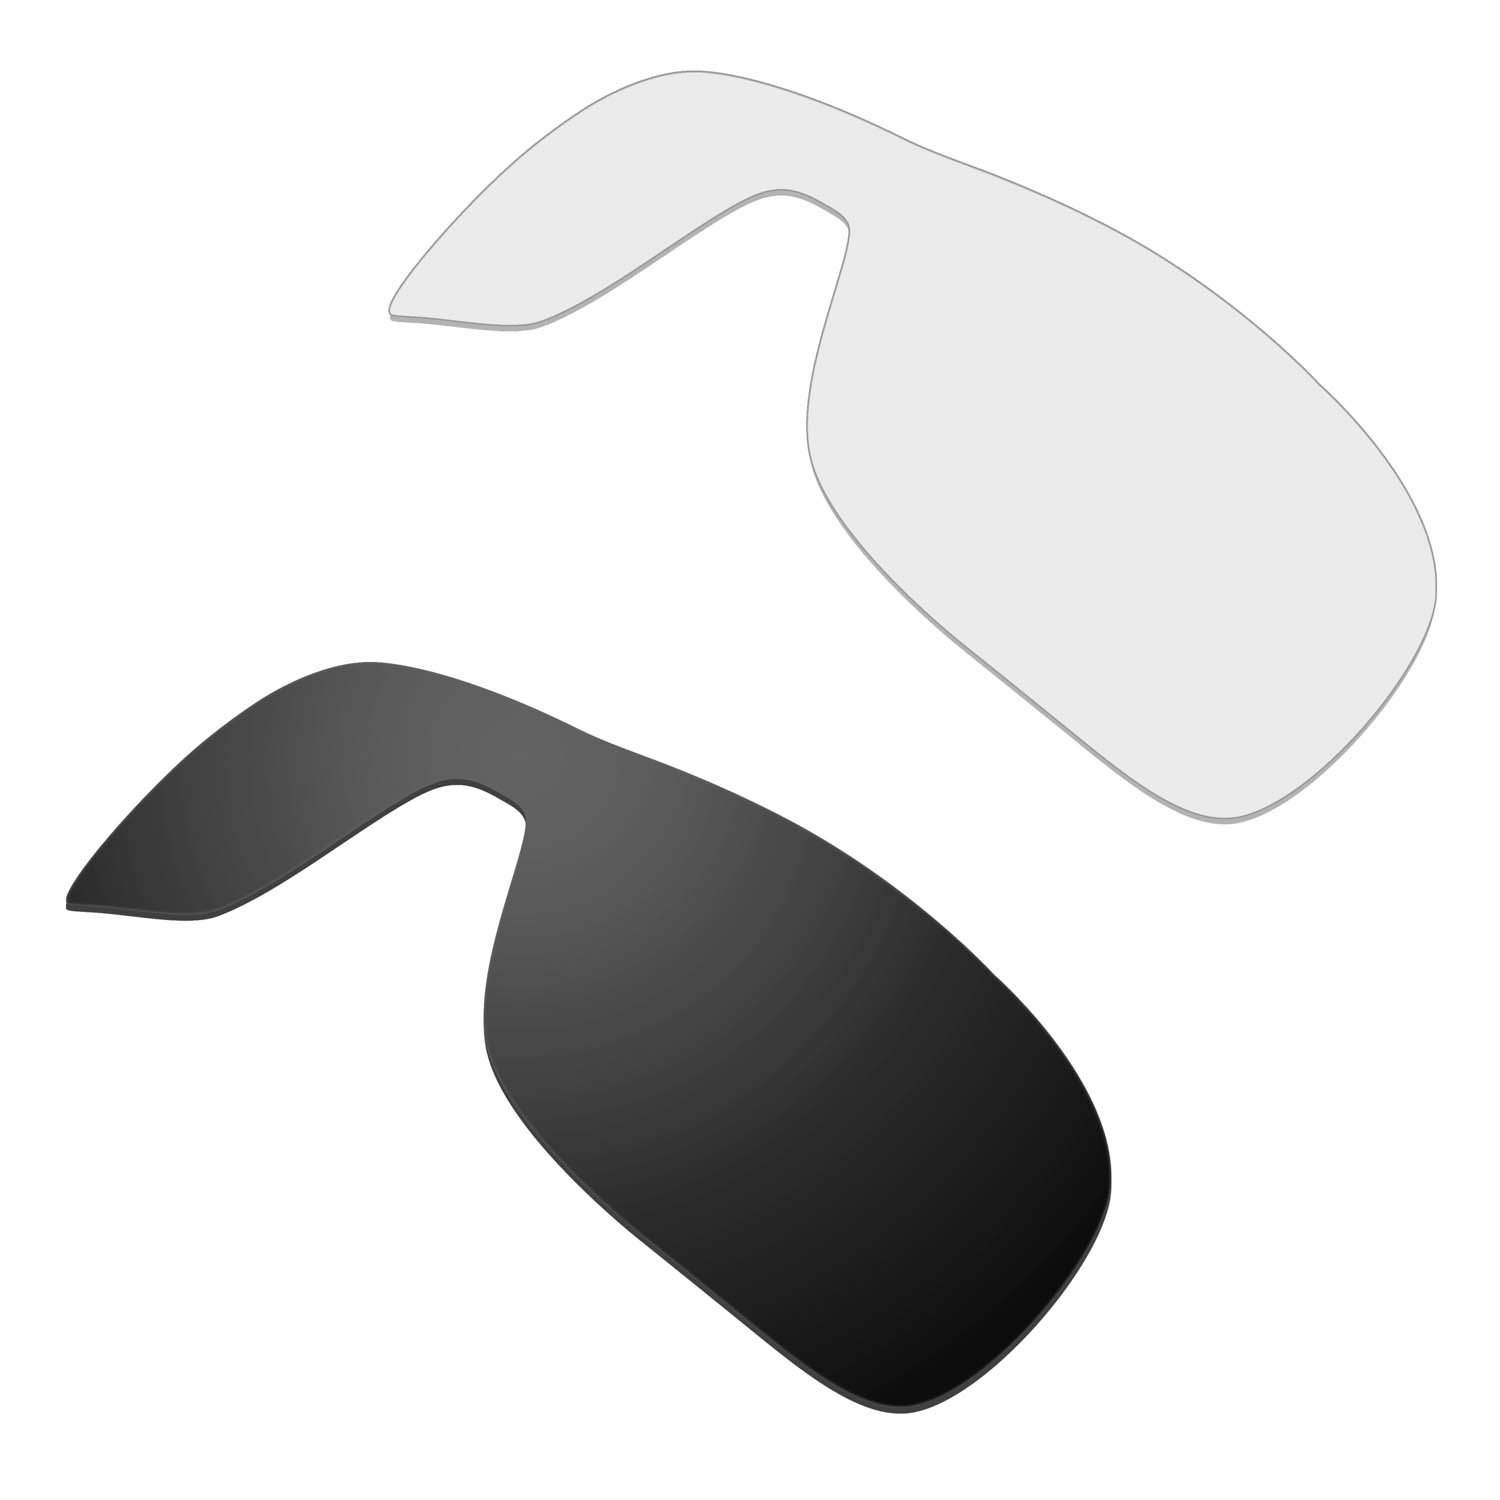 b66c131f8ff Amazon.com  HKUCO Mens Replacement Lenses for Oakley Turbine Rotor Sunglasses  Black Transparent Polarized  Sports   Outdoors